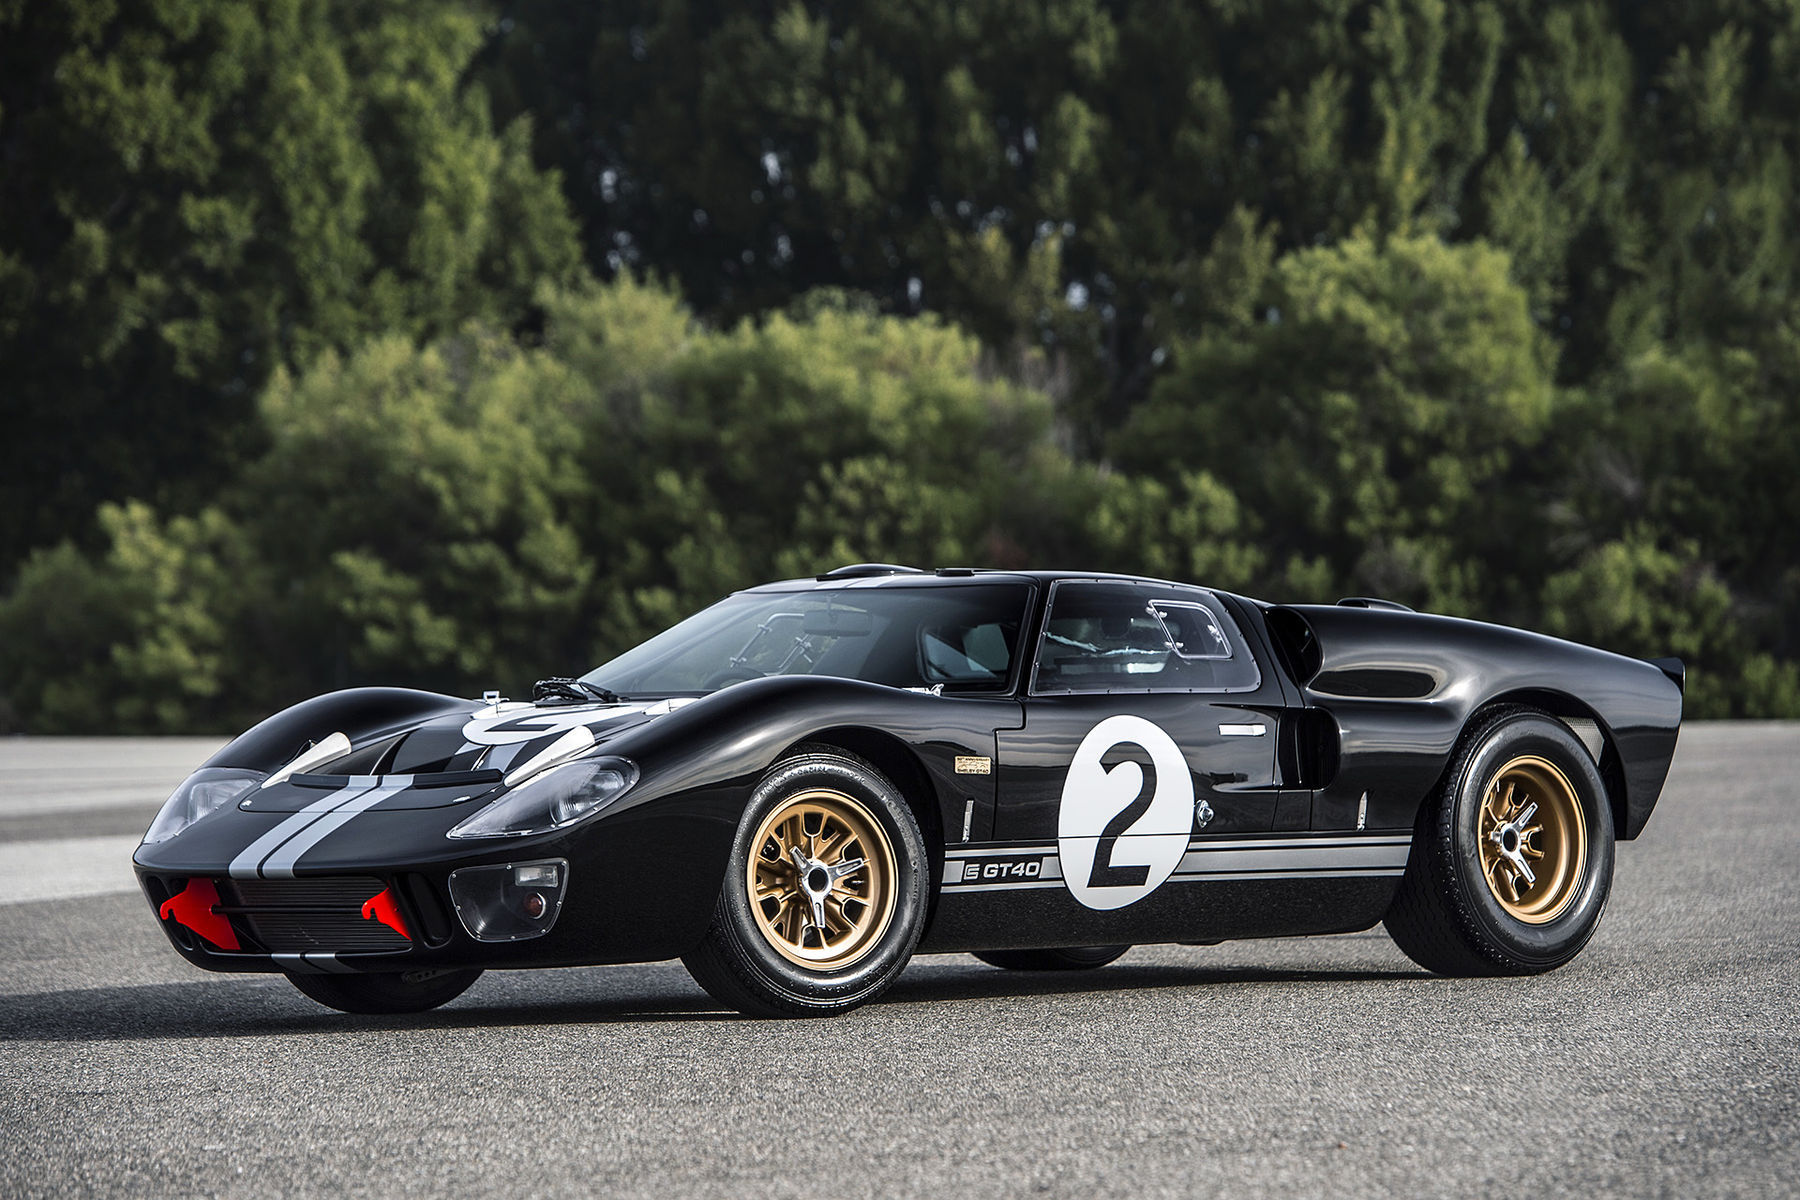 2016 Ford GT | 2016 Shelby GT40 MKII 50th Anniversary Edition